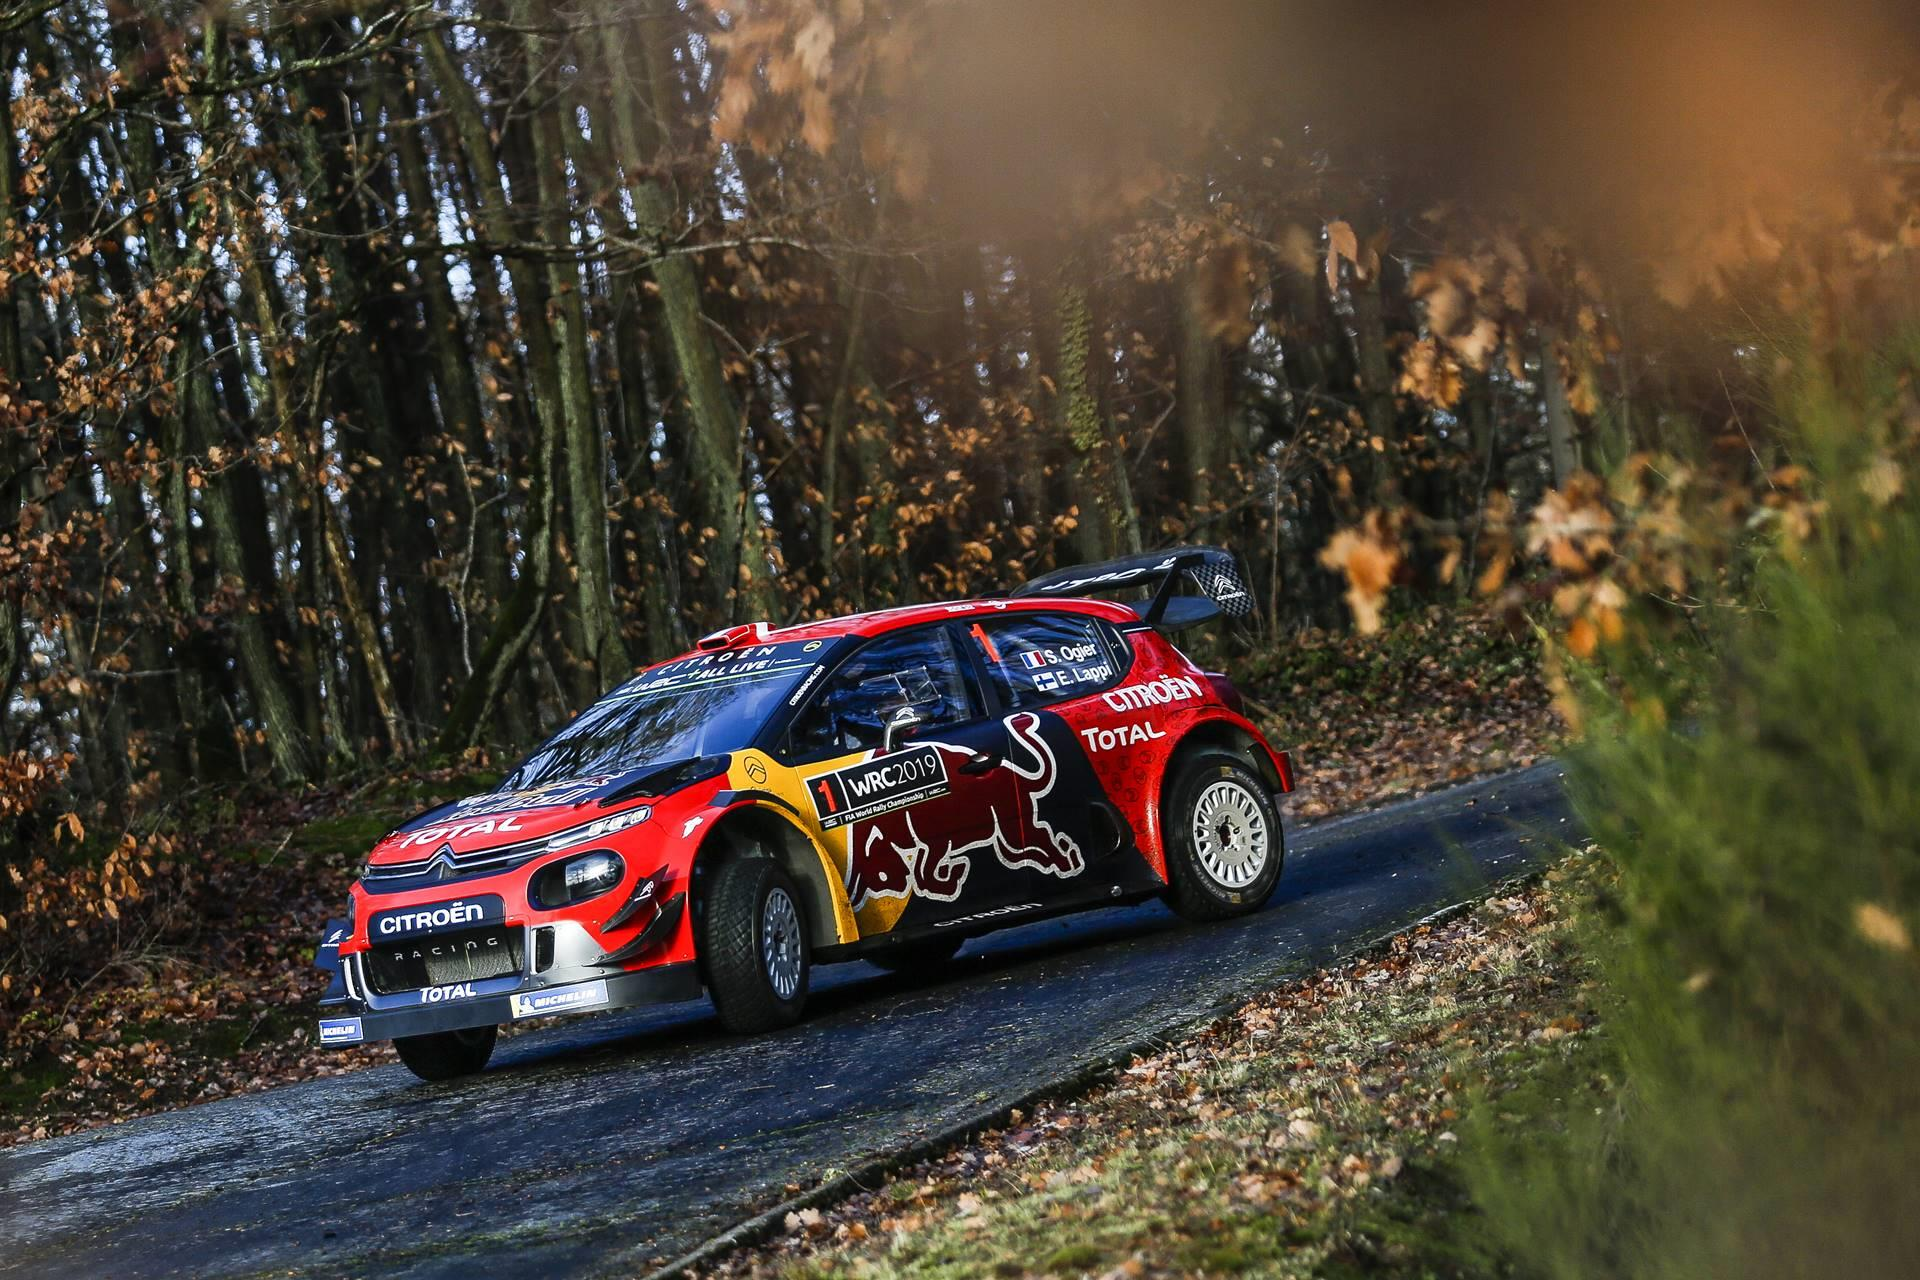 2019 citroen c3 wrc news and information research and pricing. Black Bedroom Furniture Sets. Home Design Ideas